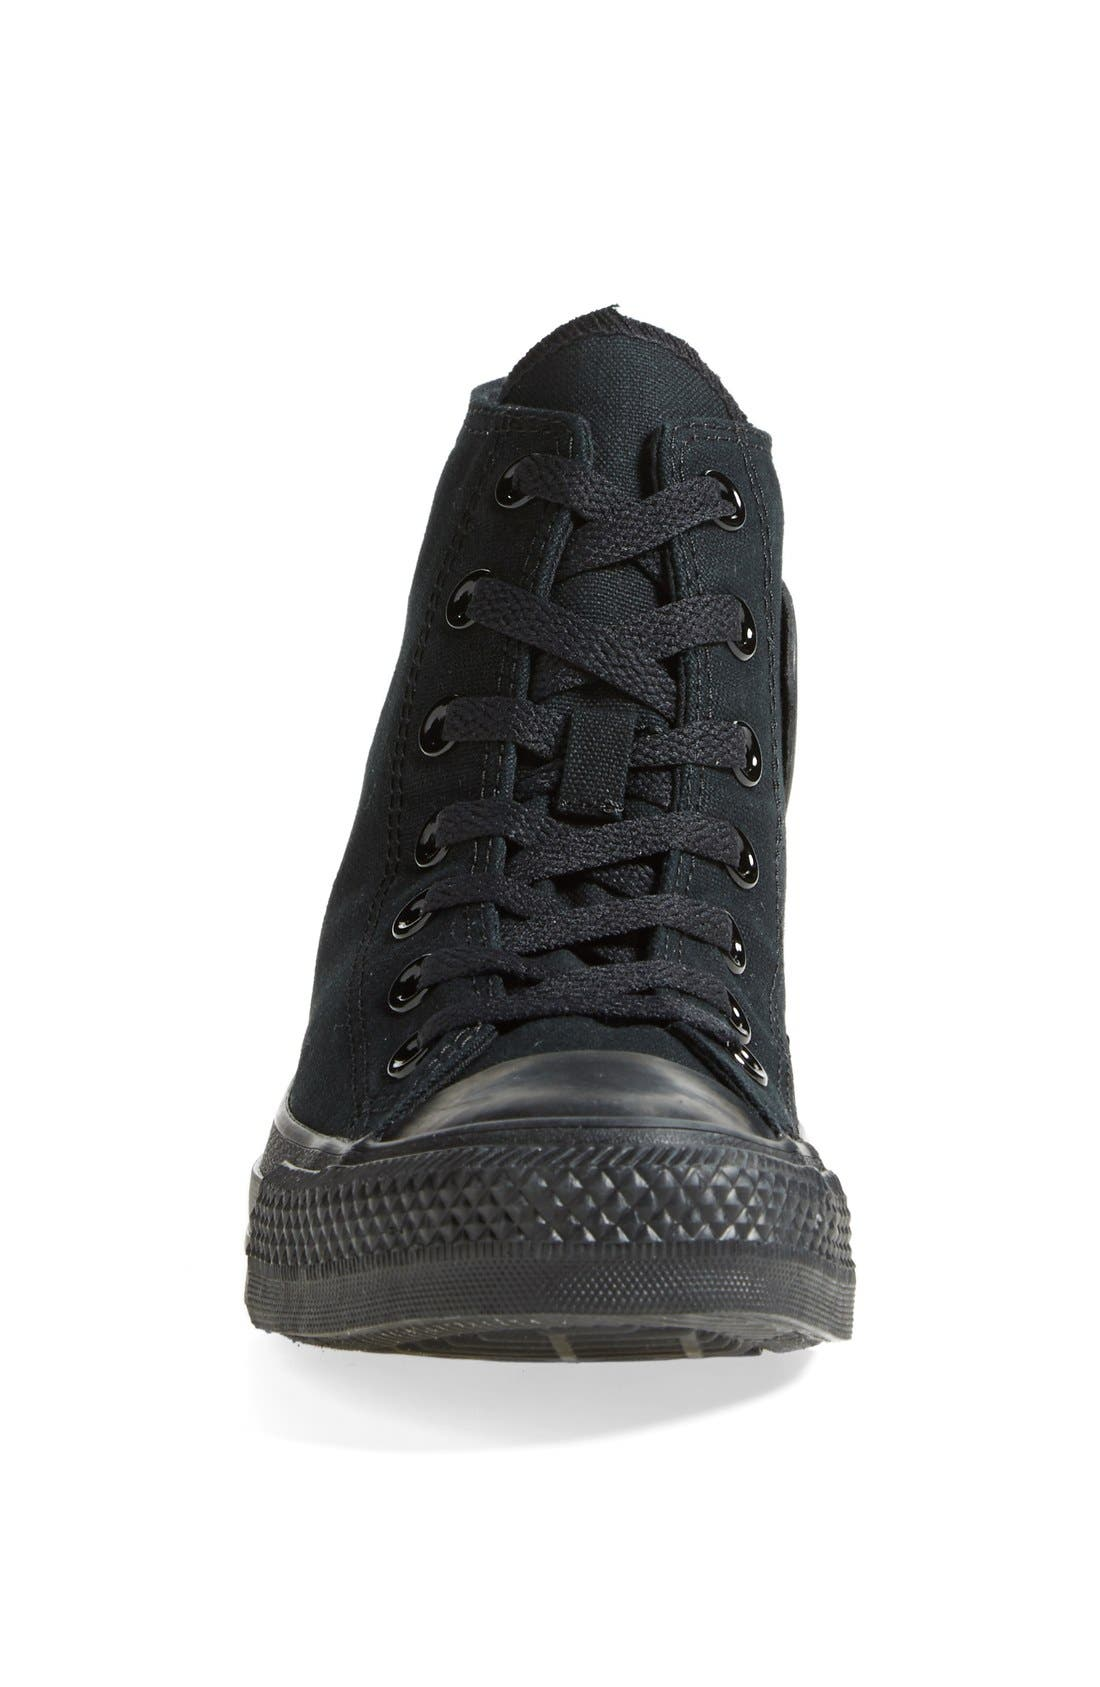 CONVERSE, Chuck Taylor<sup>®</sup> All Star<sup>®</sup> High Top Sneaker, Alternate thumbnail 4, color, 006